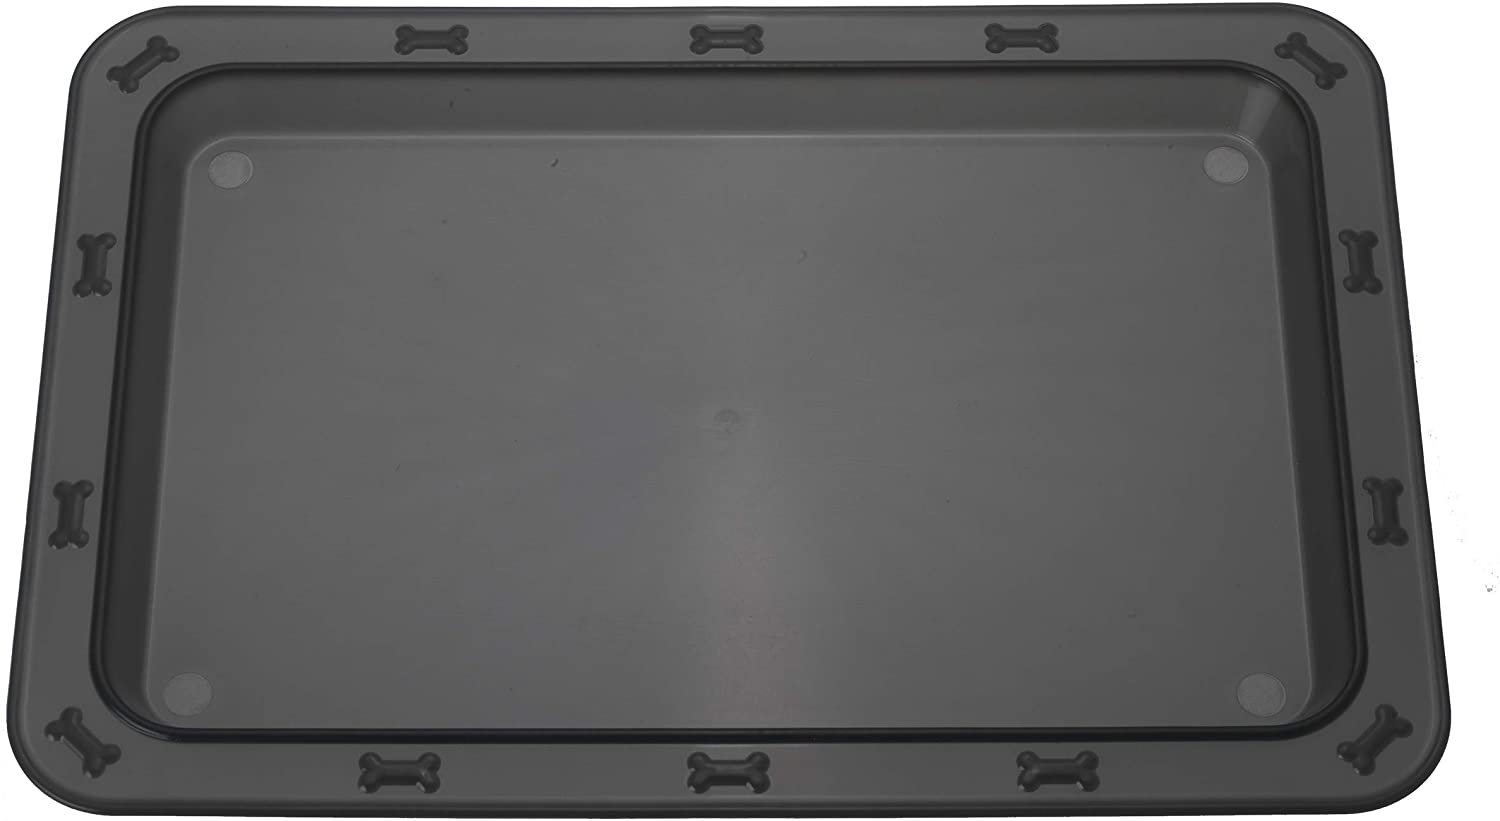 PetRageous 70669 Bone N Up Non-Slip Clear Plastic Dog and Cat Feeding Tray 19.25-Inch by 13-Inch Great for Dogs and Cats, Black